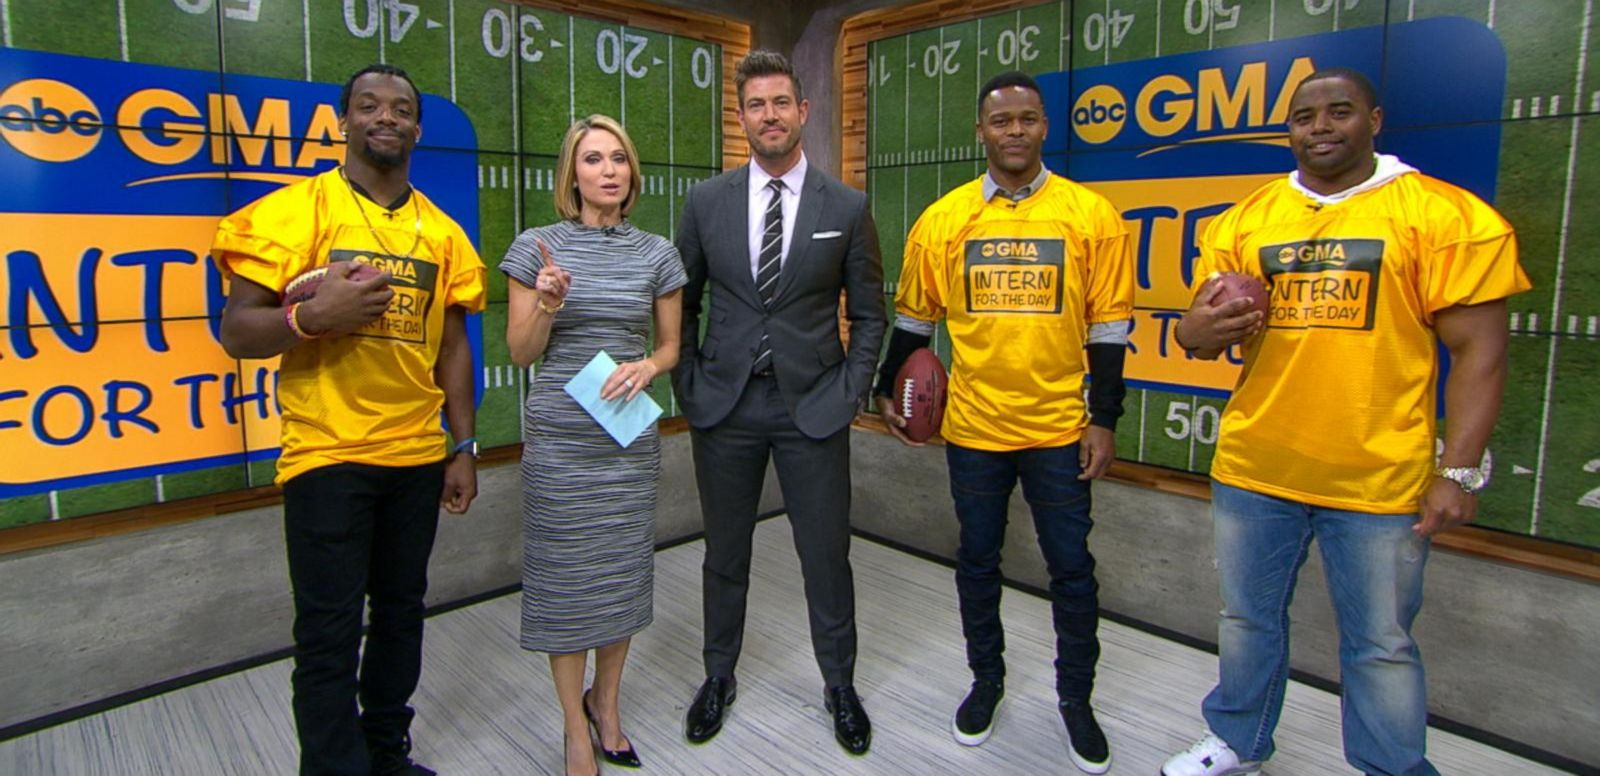 VIDEO: NFL Players Become Interns on GMA